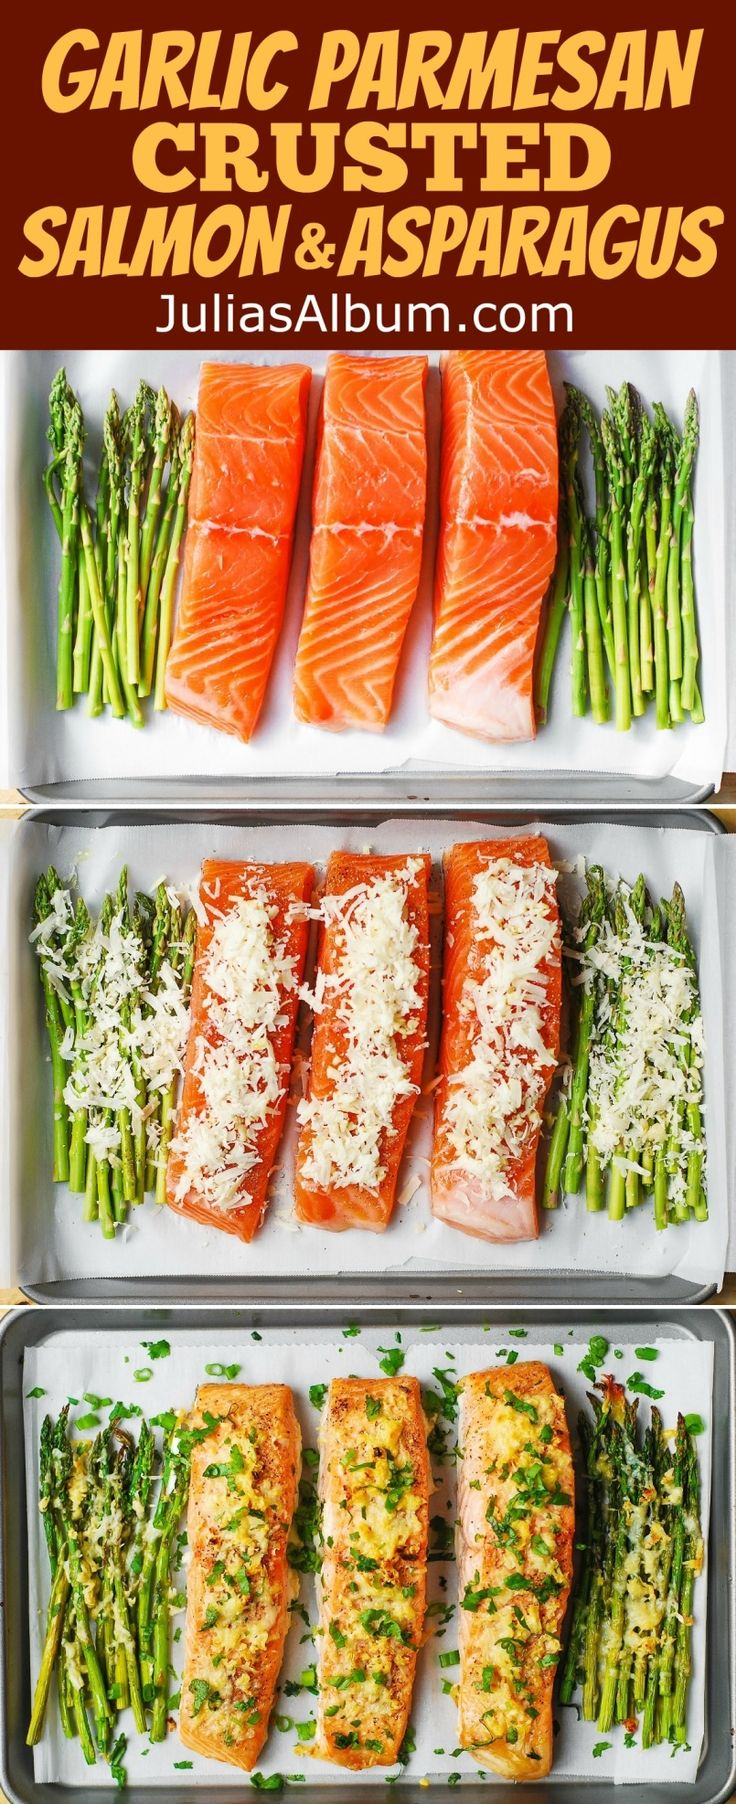 Garlic Parmesan Crusted Salmon and Asparagus - easy, healthy, gluten free dinner (seafood, fish recipes)